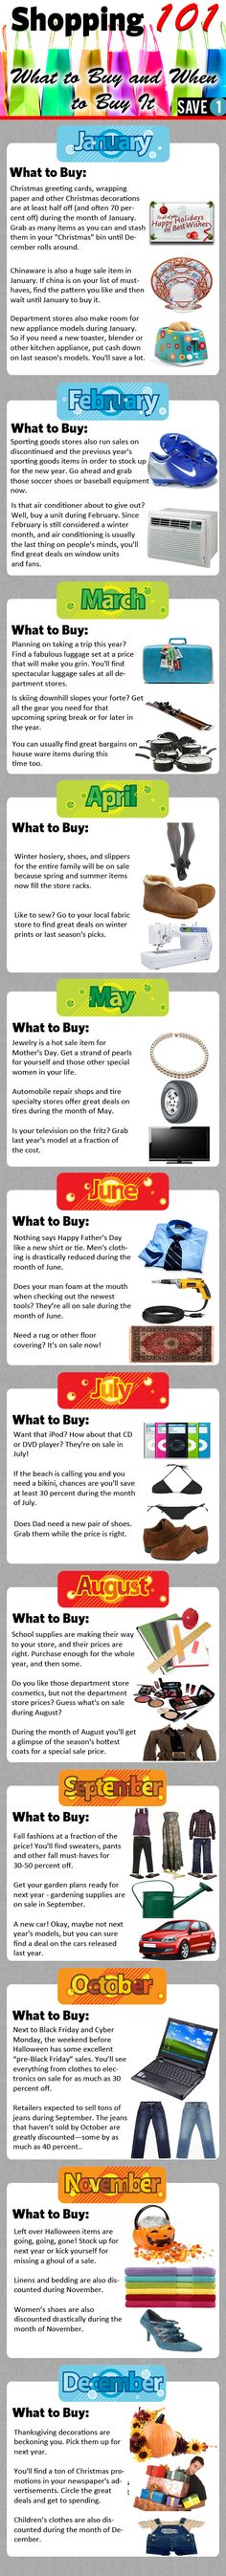 A guide that has a lot of tips on when to buy various things when they're cheaper!